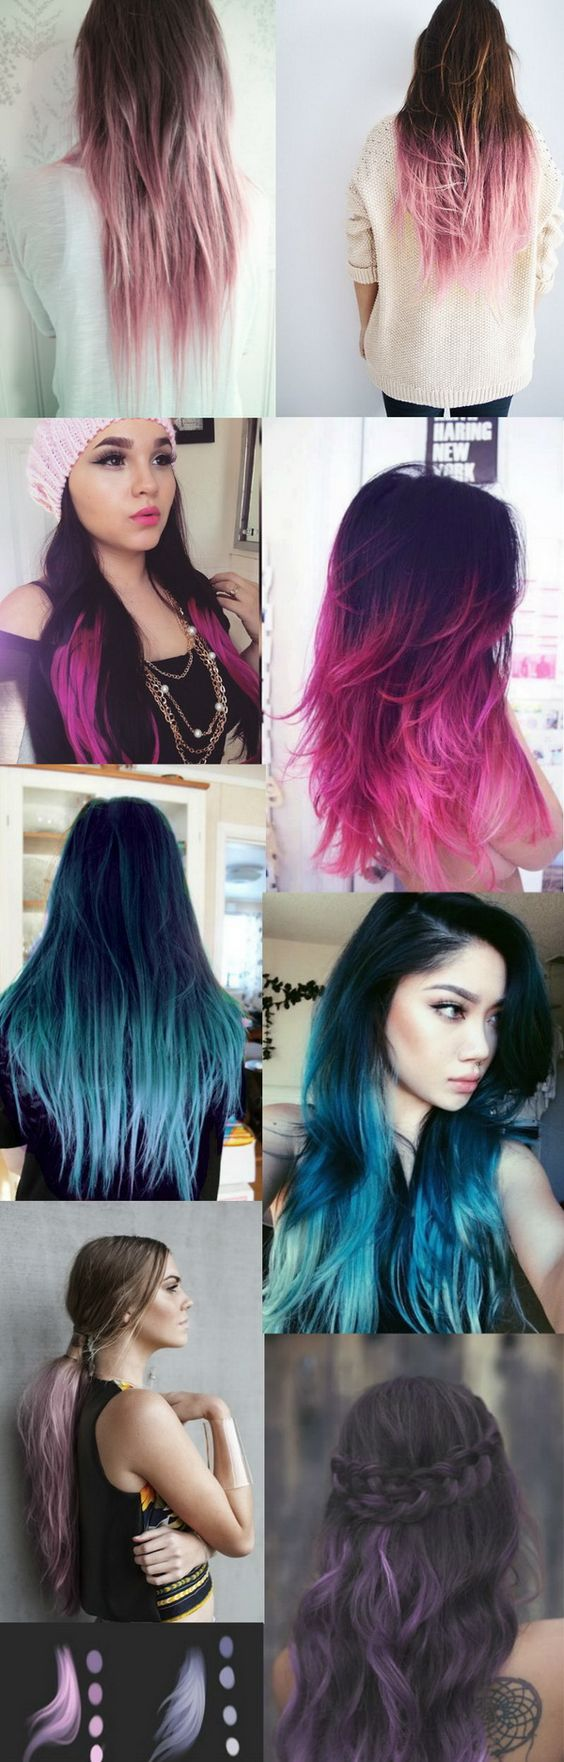 Pastel Ombre Hairstyles